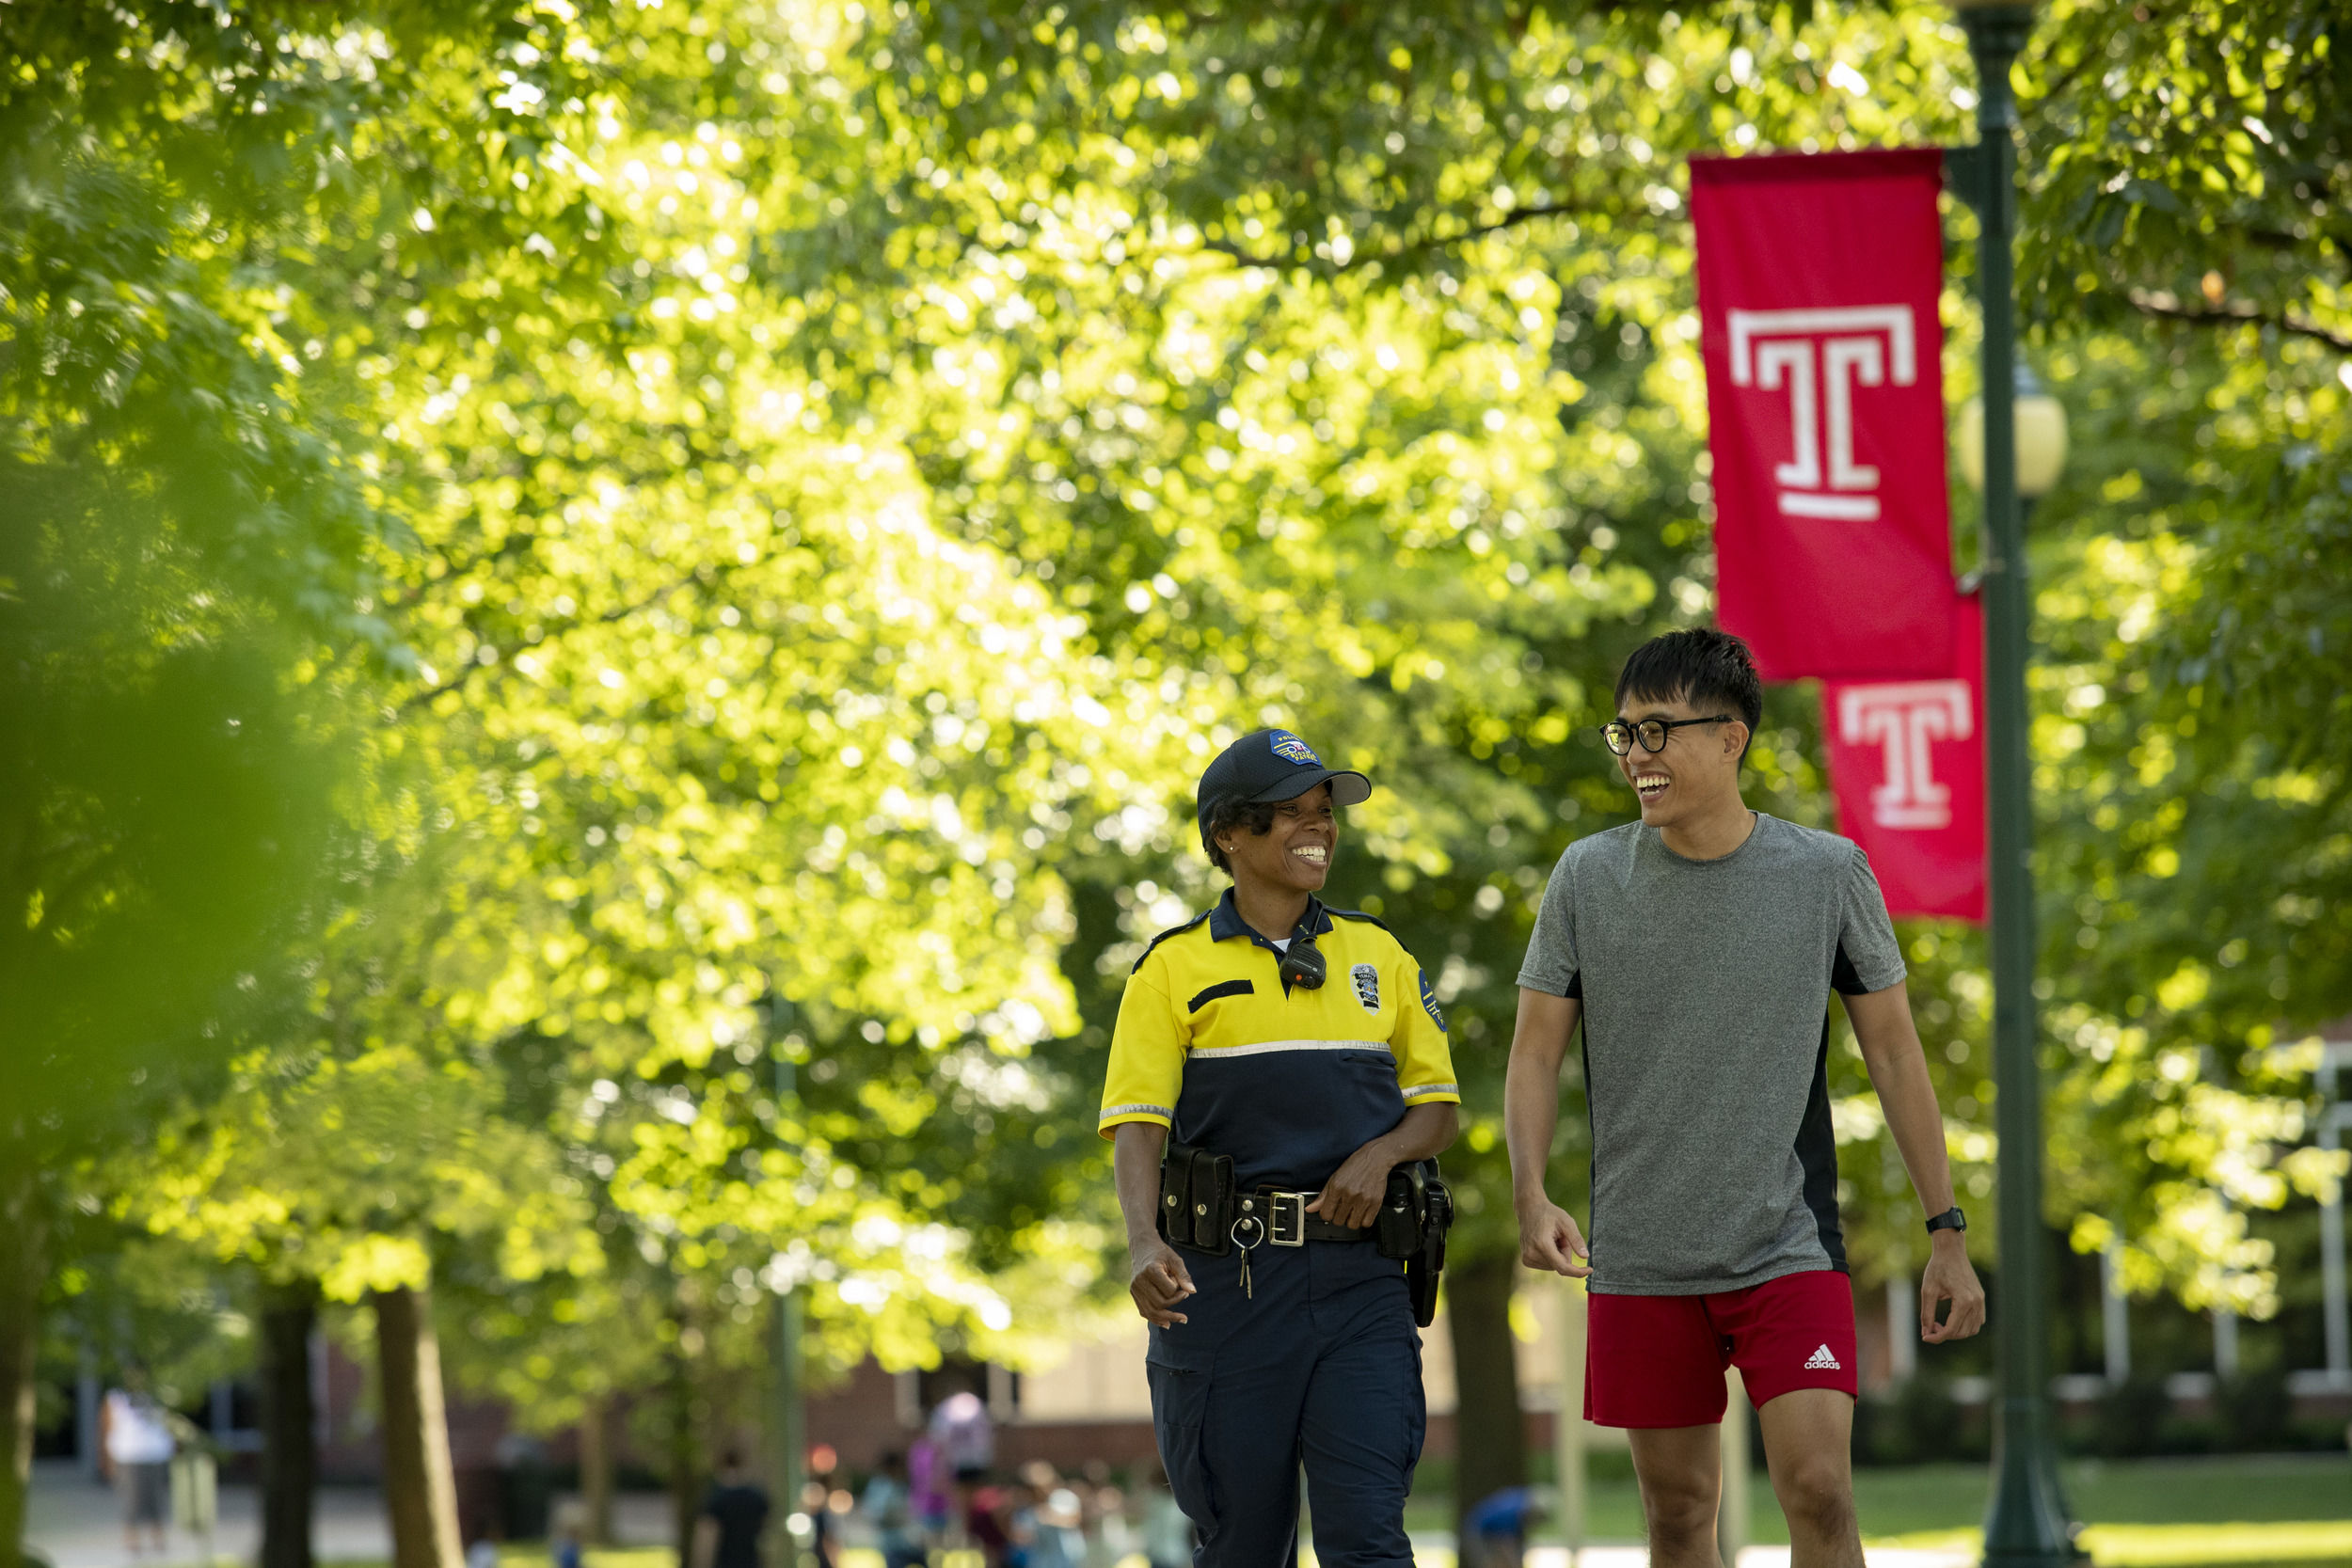 A student walking with Ambler Campus security.